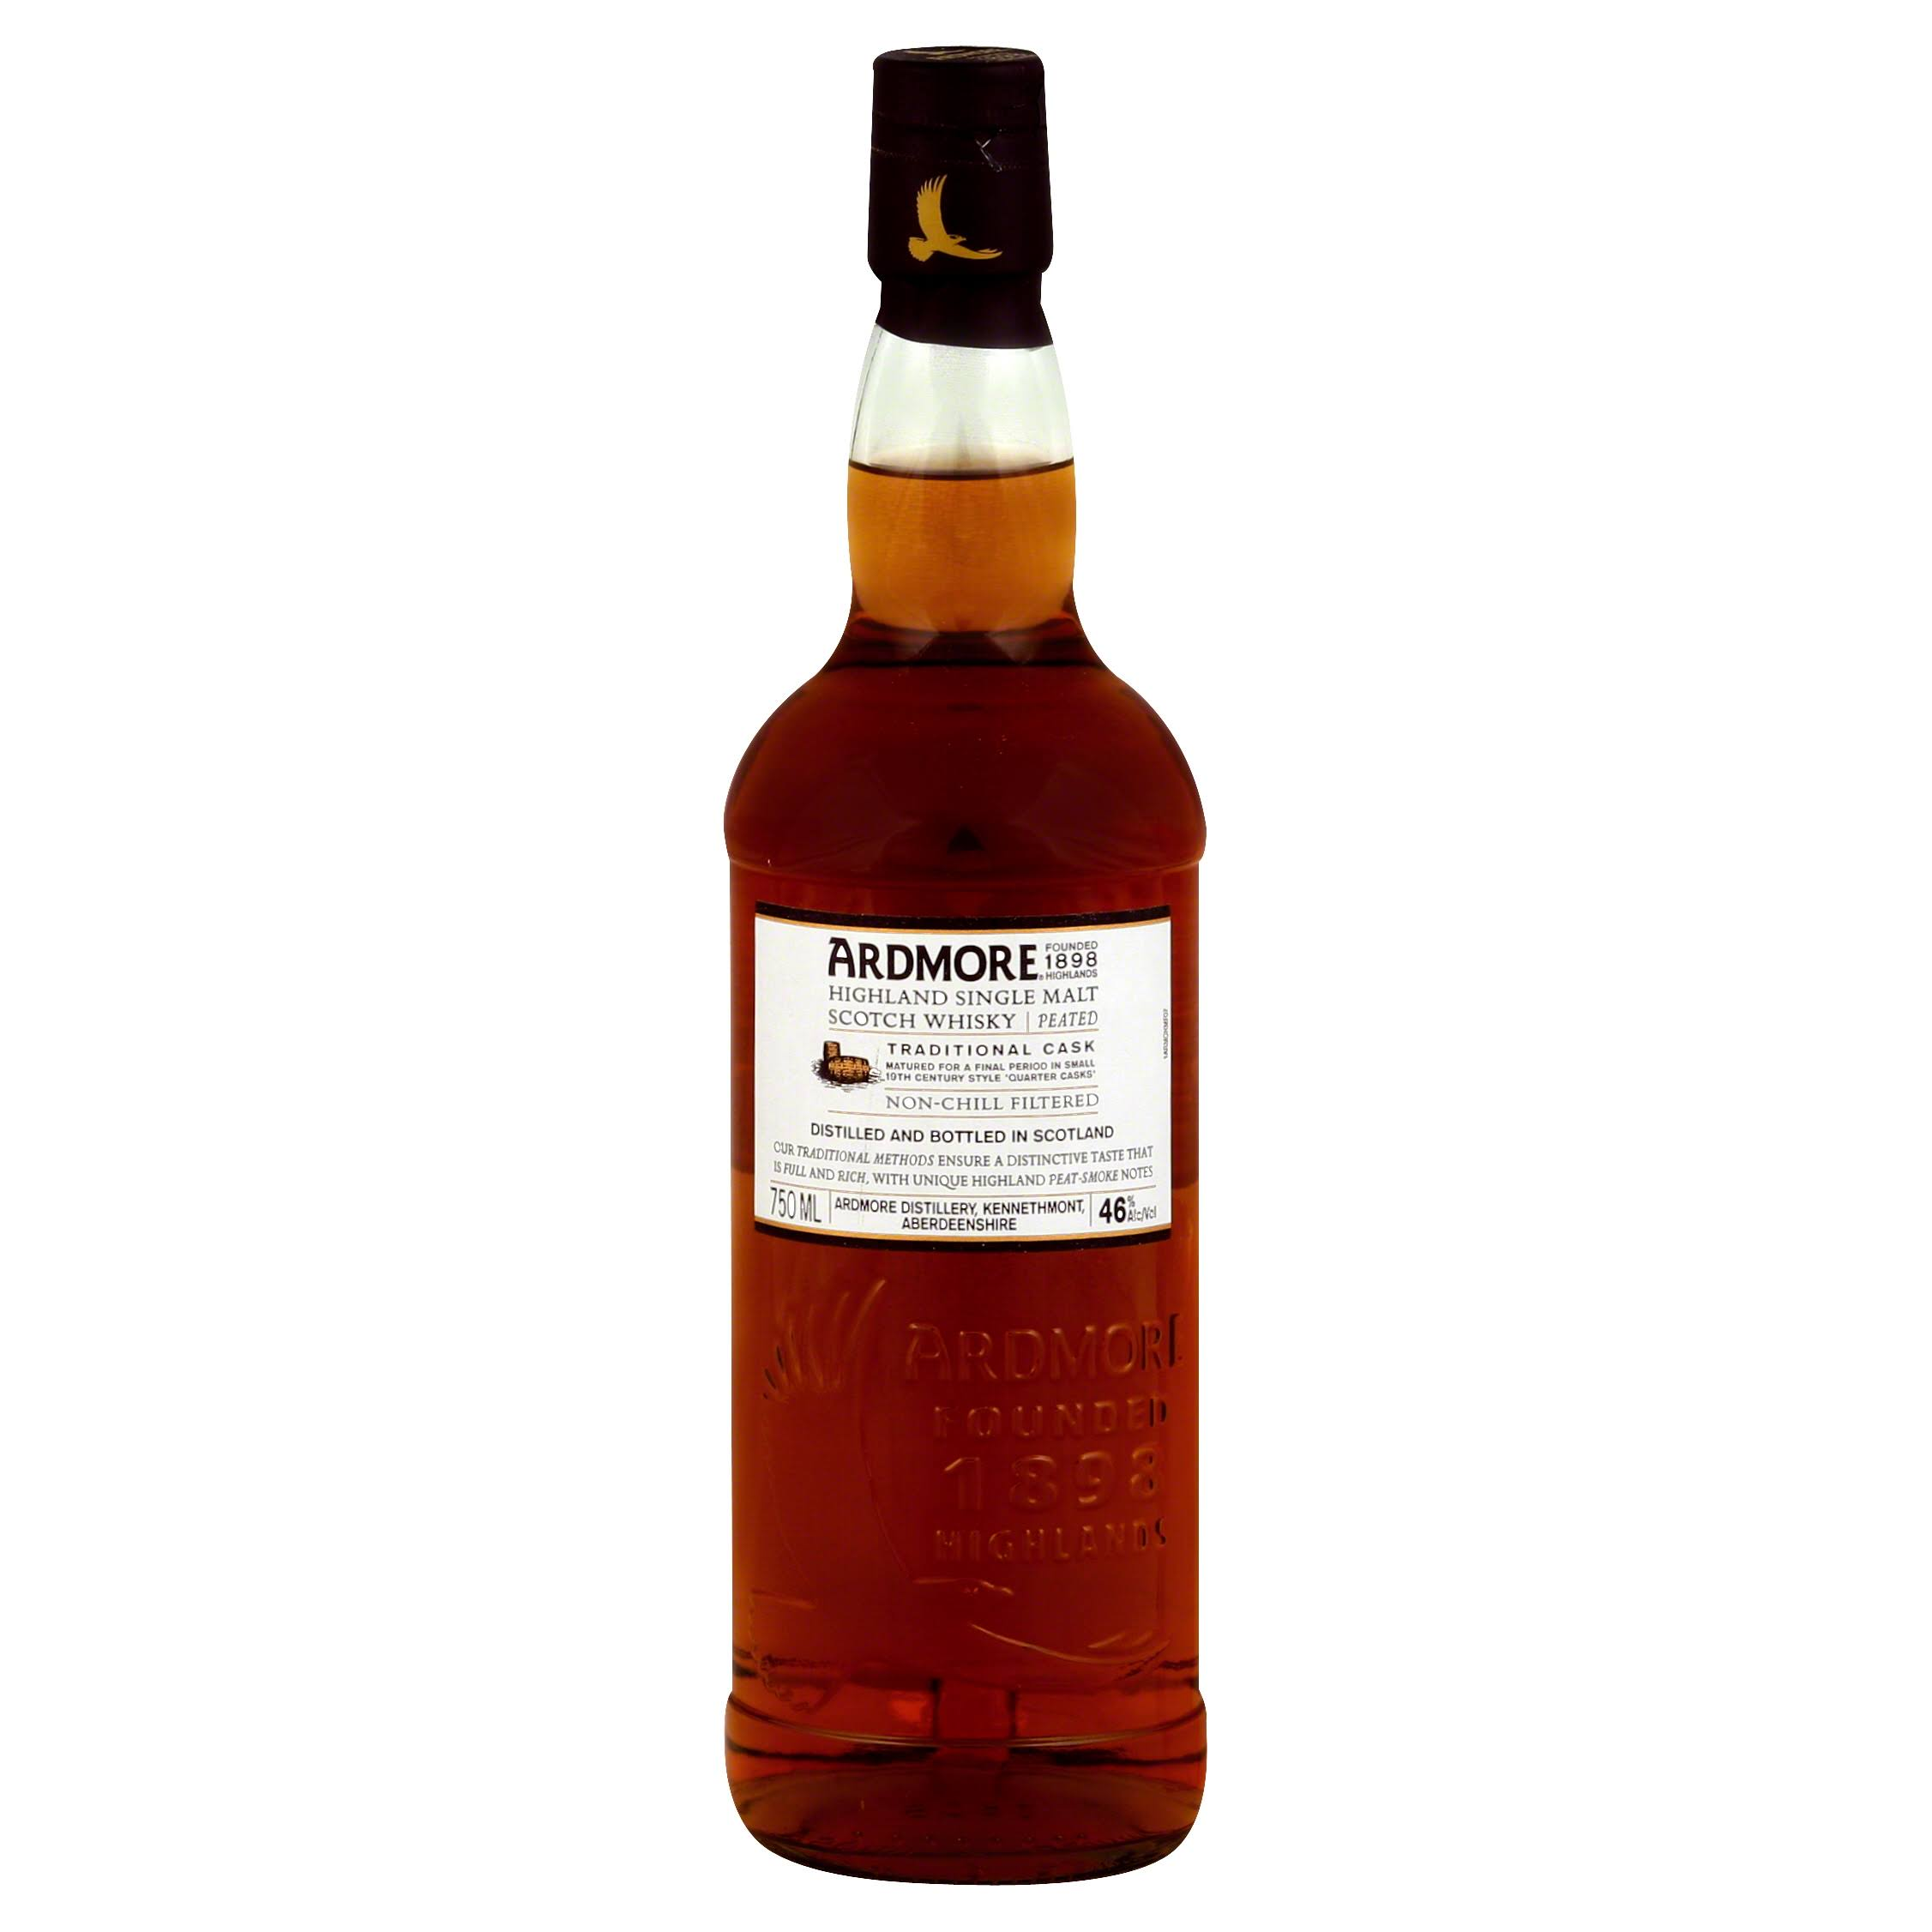 Ardmore Scotch Whisky, Highland Single Malt - 750 ml